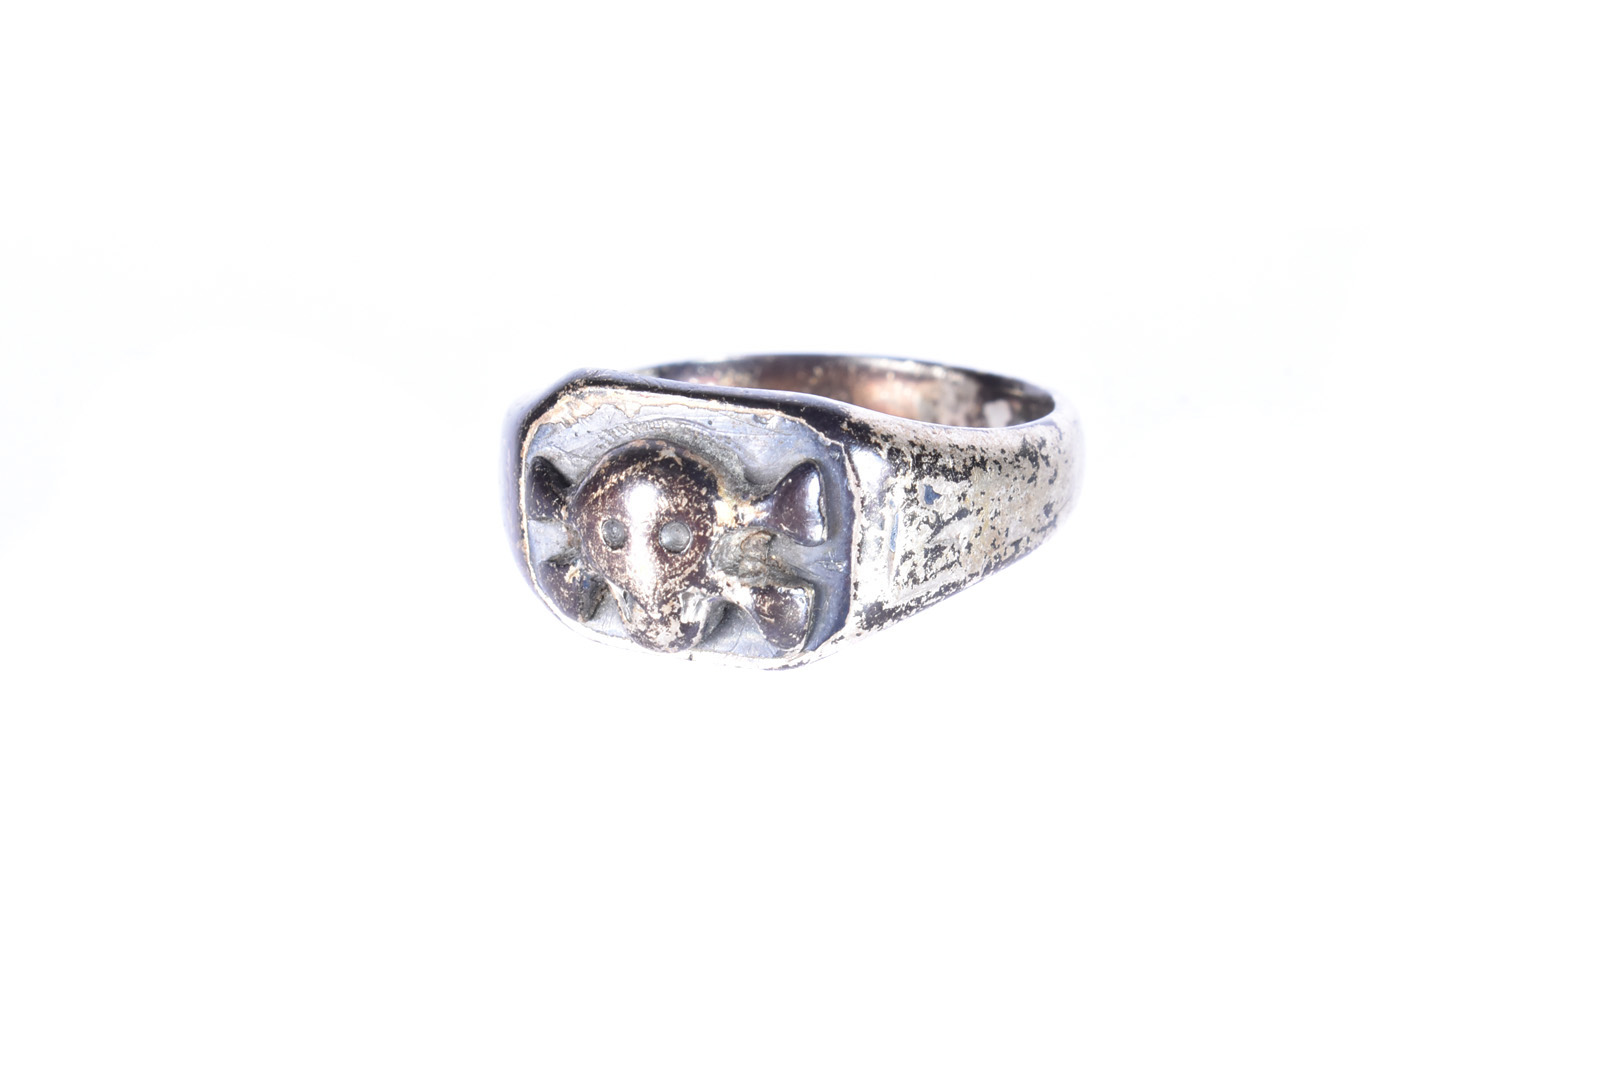 A German Third Reich Honour ring, possibly SS, the white-metal ring with skull and cross bones to